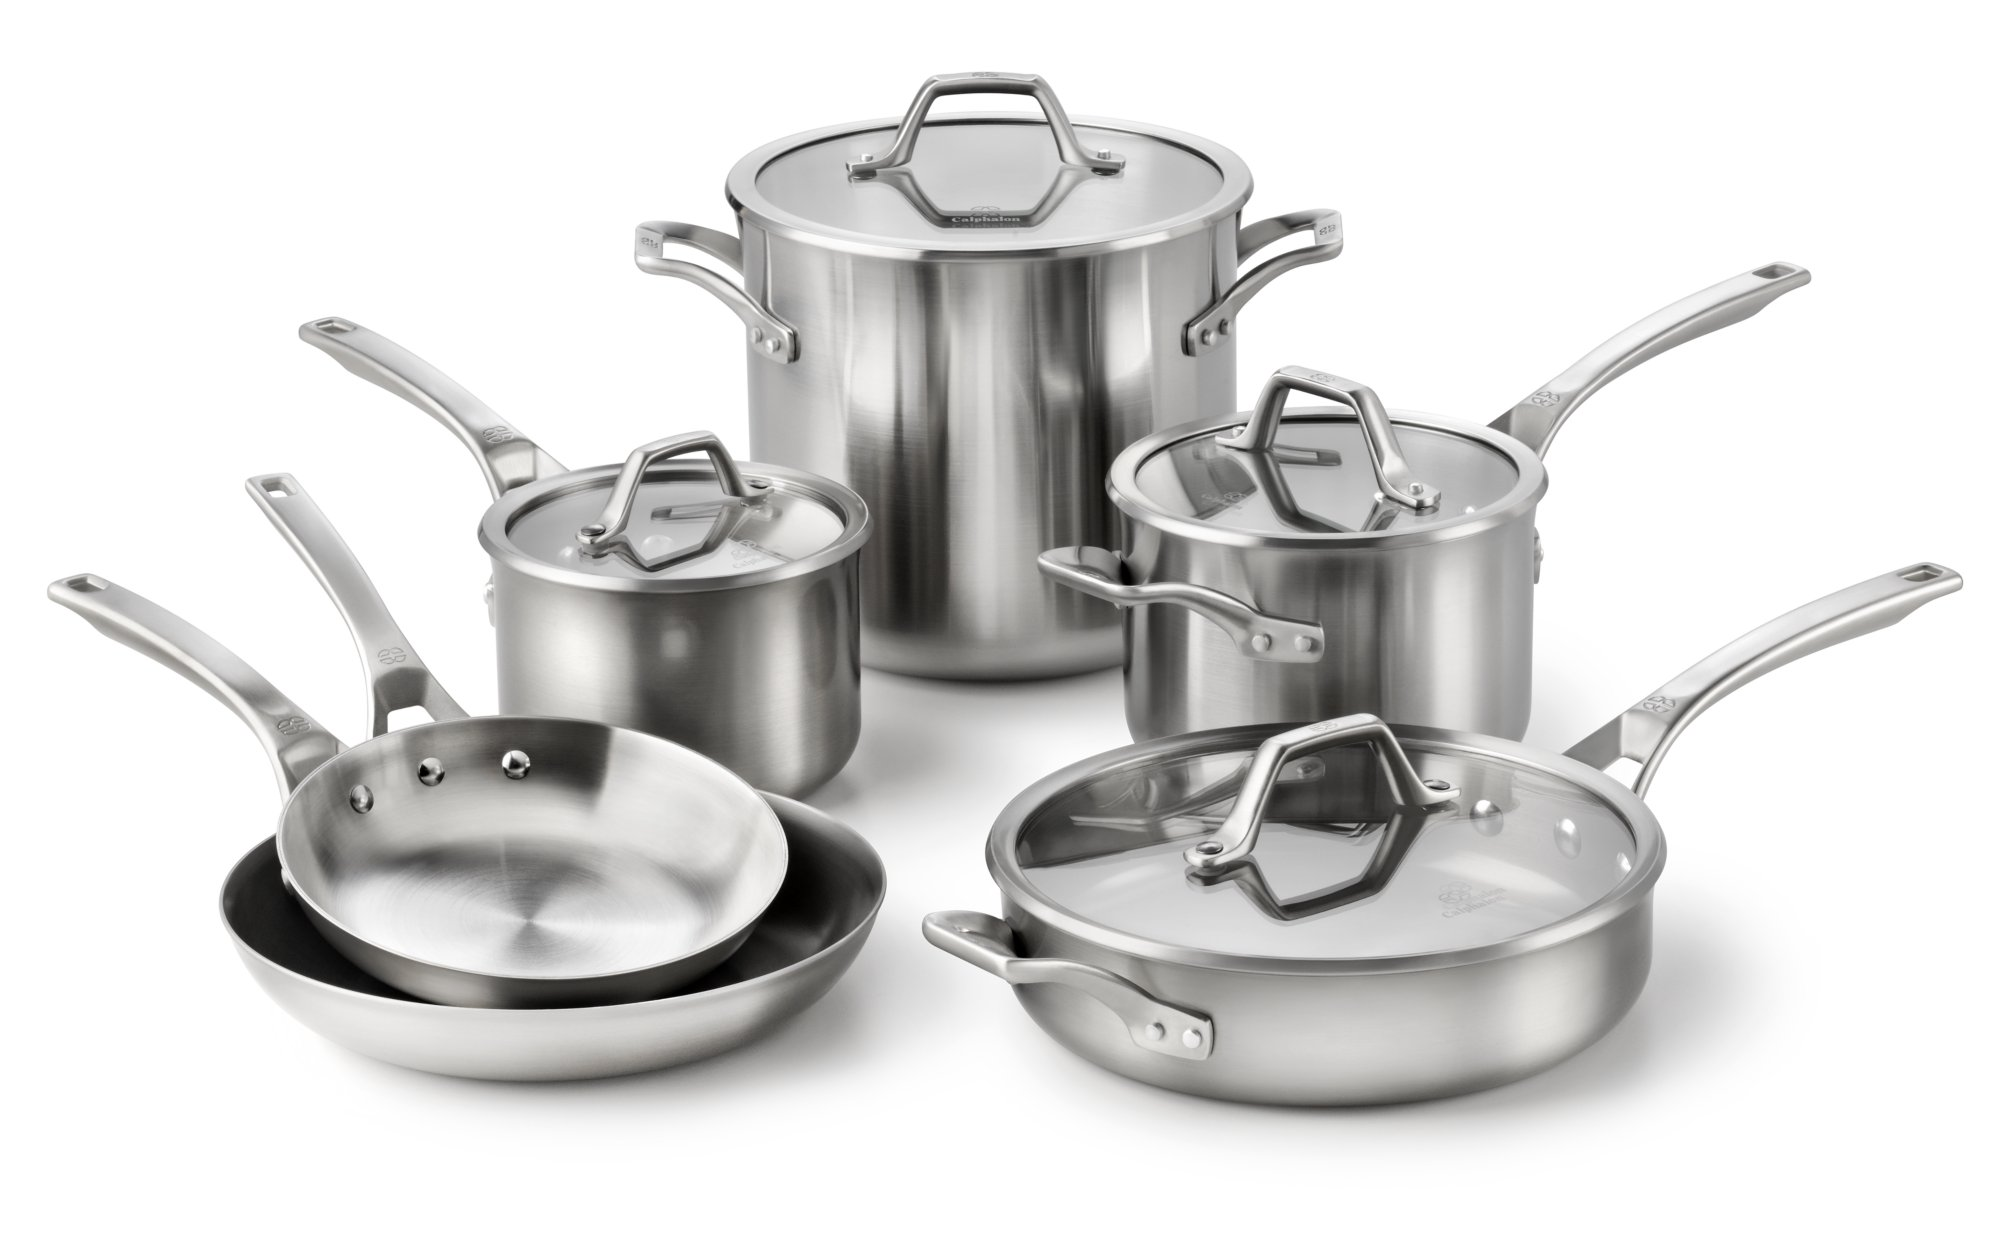 Calphalon AccuCore Stainless Steel 10-pc. Set